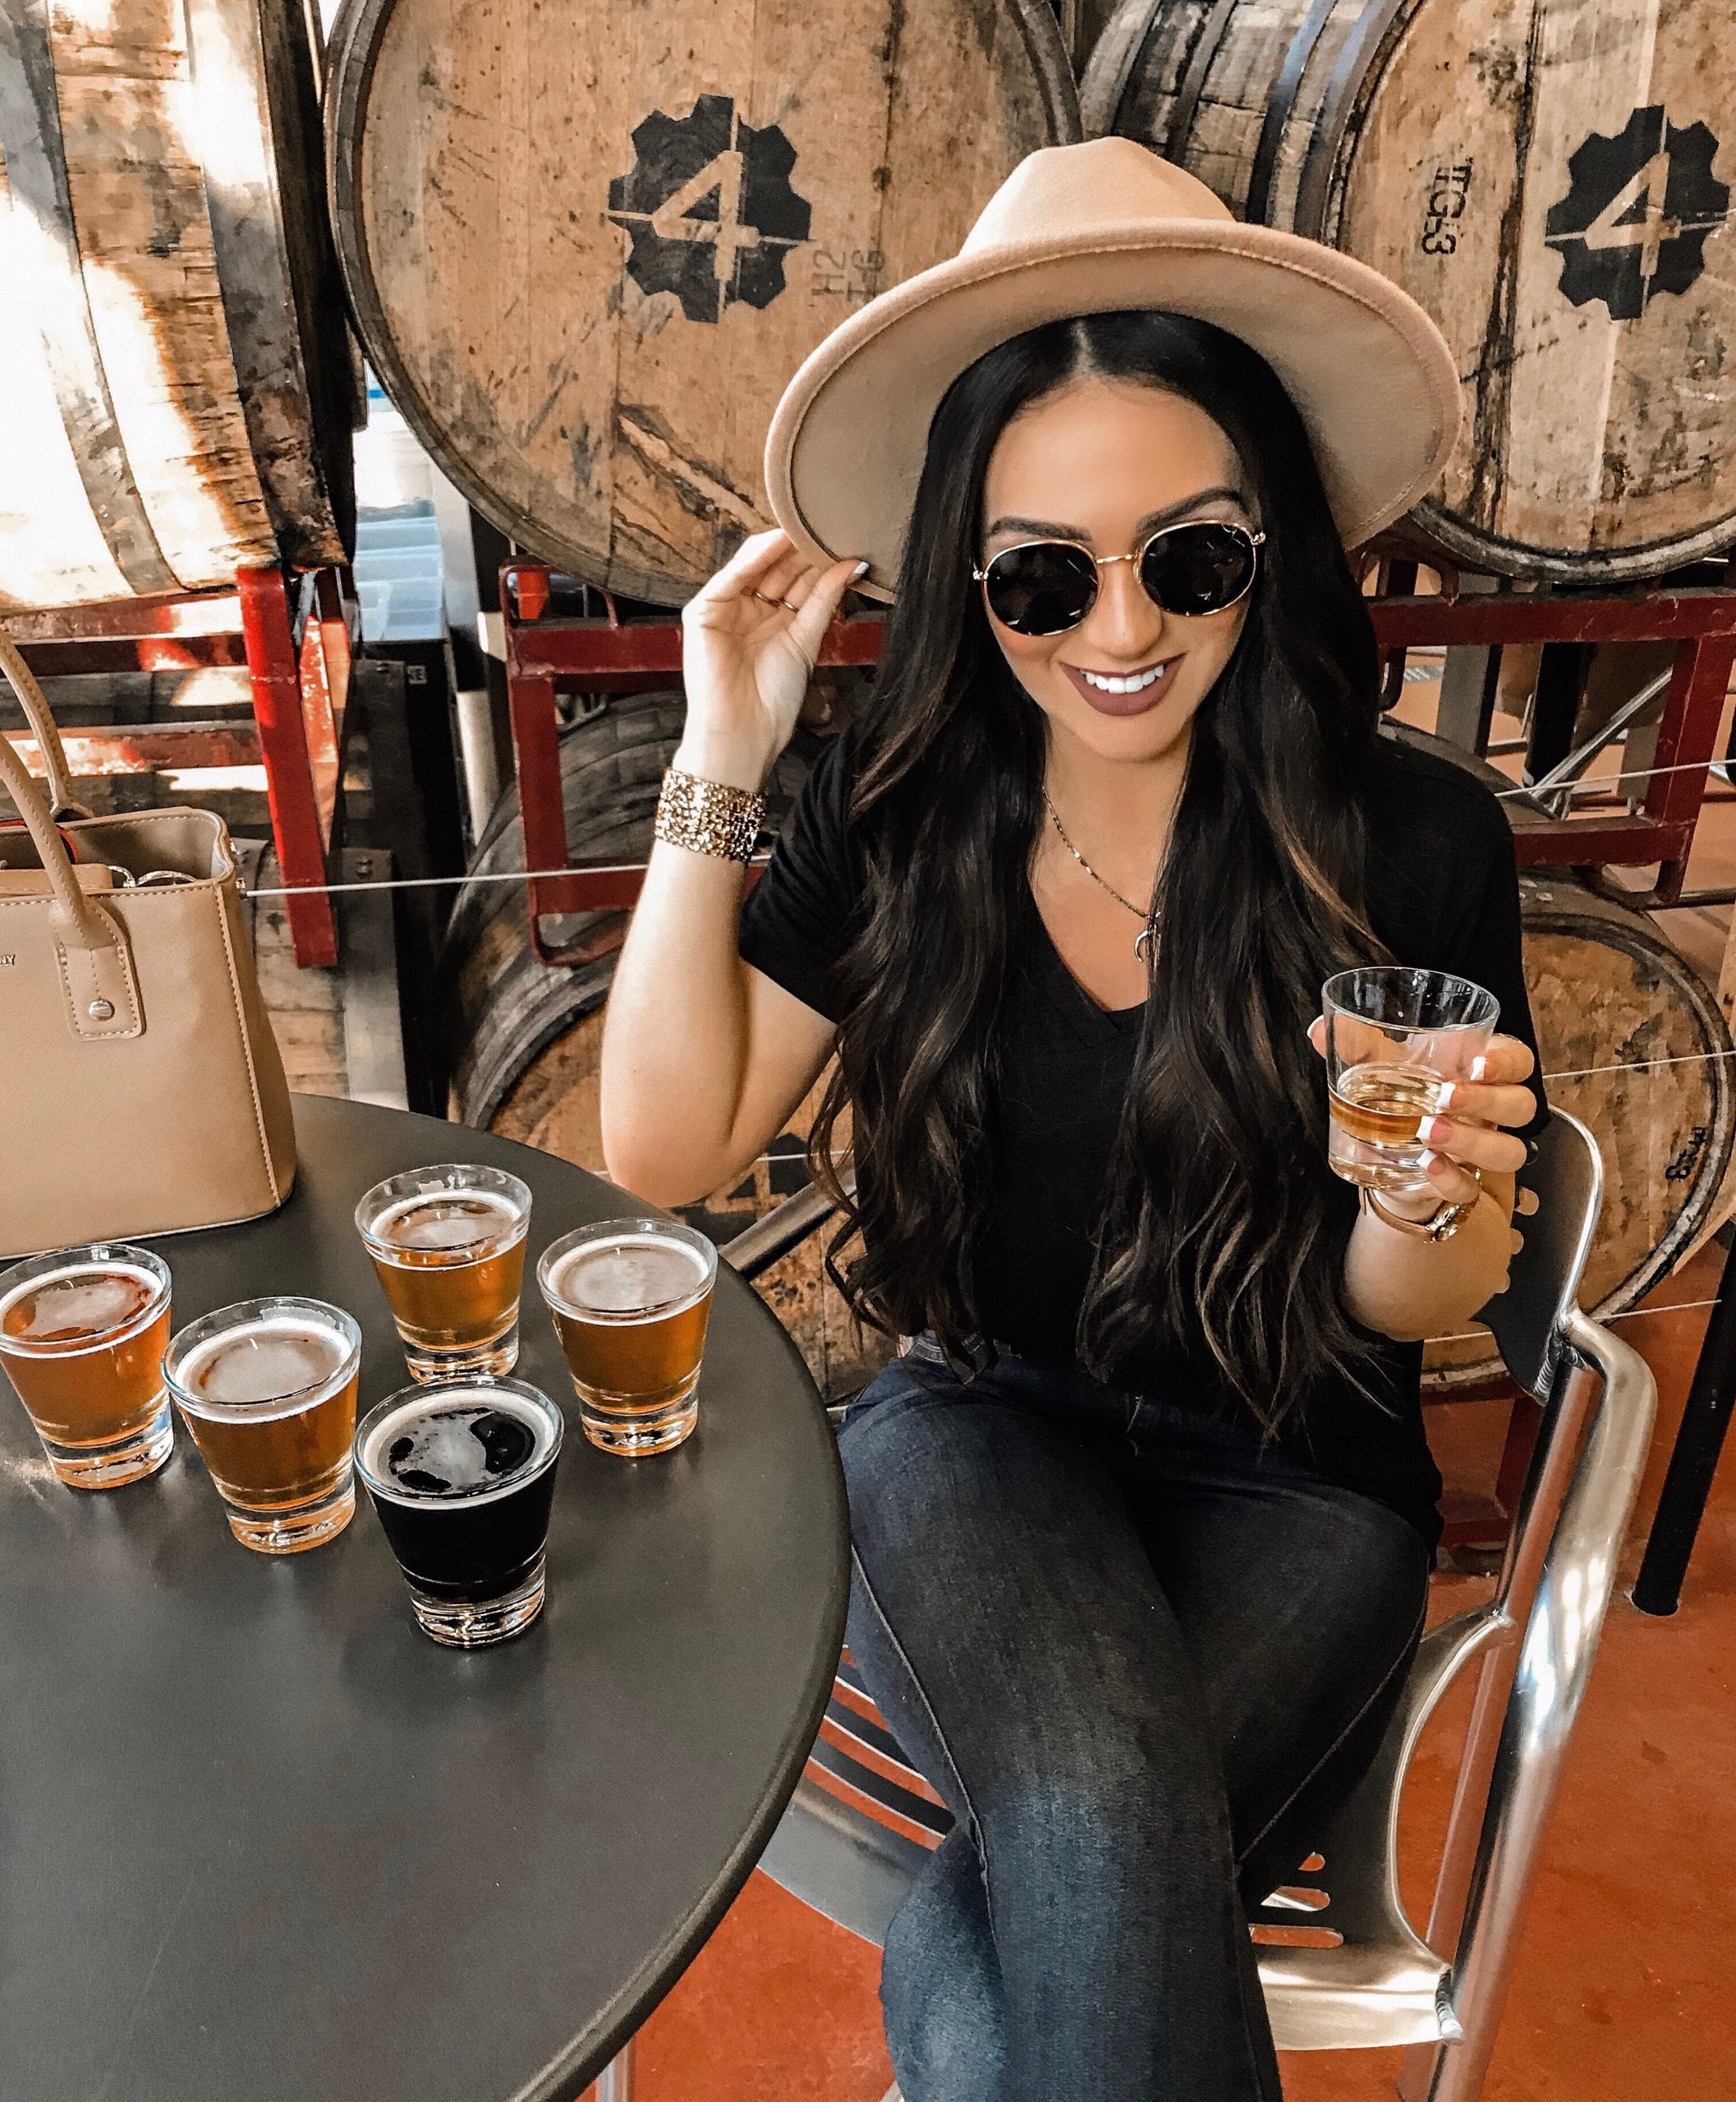 a girl holding a beer smiling